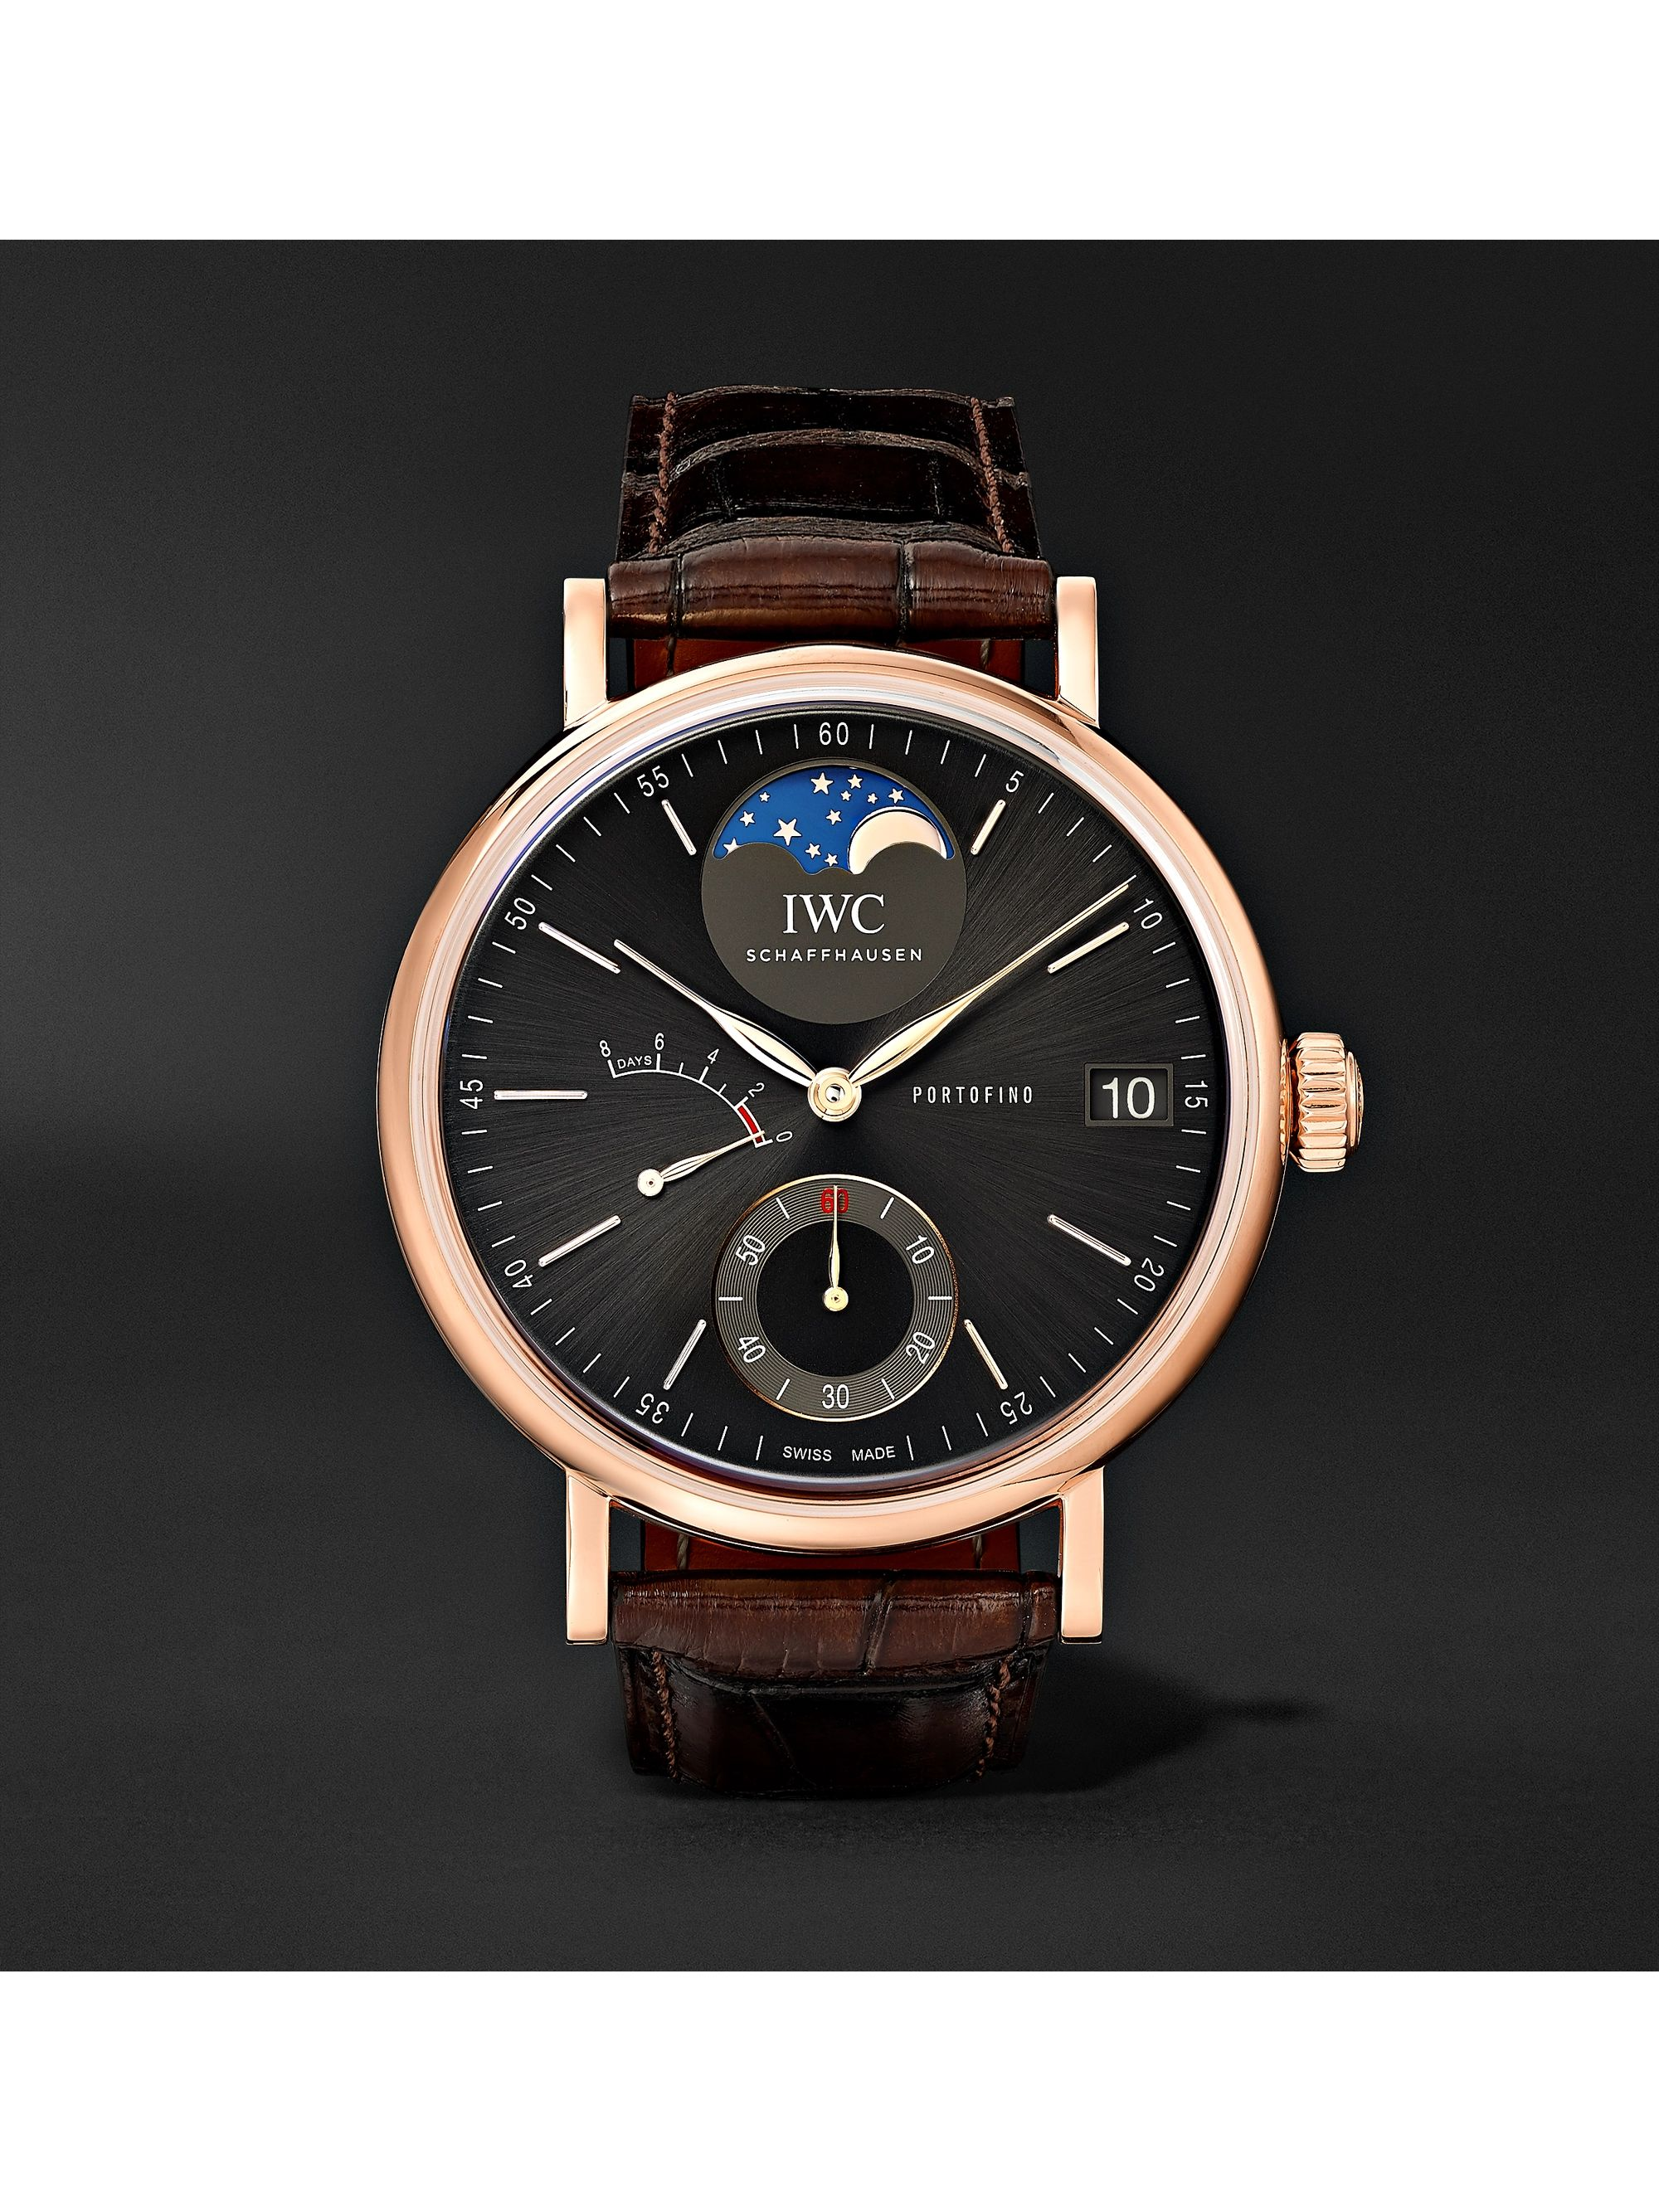 IWC SCHAFFHAUSEN Portofino Hand-Wound Moon Phase 45mm 18-Karat Red Gold and Alligator Watch